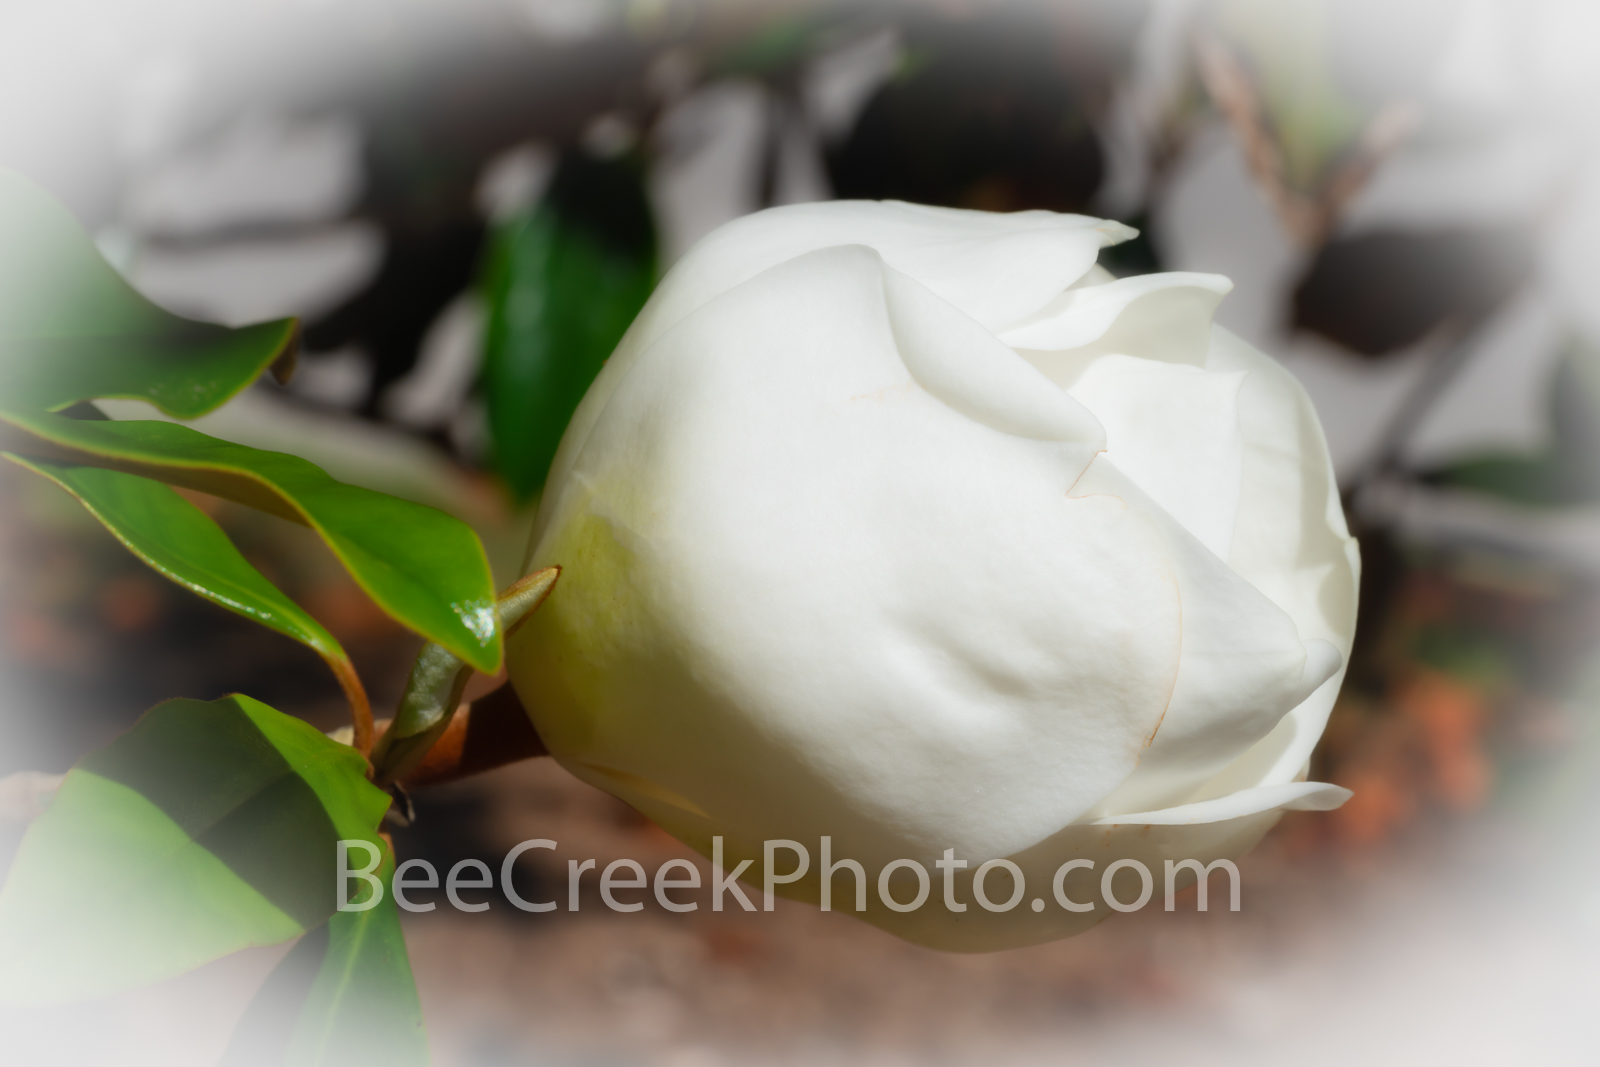 Magnolia Flower Blooming - A magnolia blooming flowers right before it opens up. The magnolia flowers are know for their wonderful...